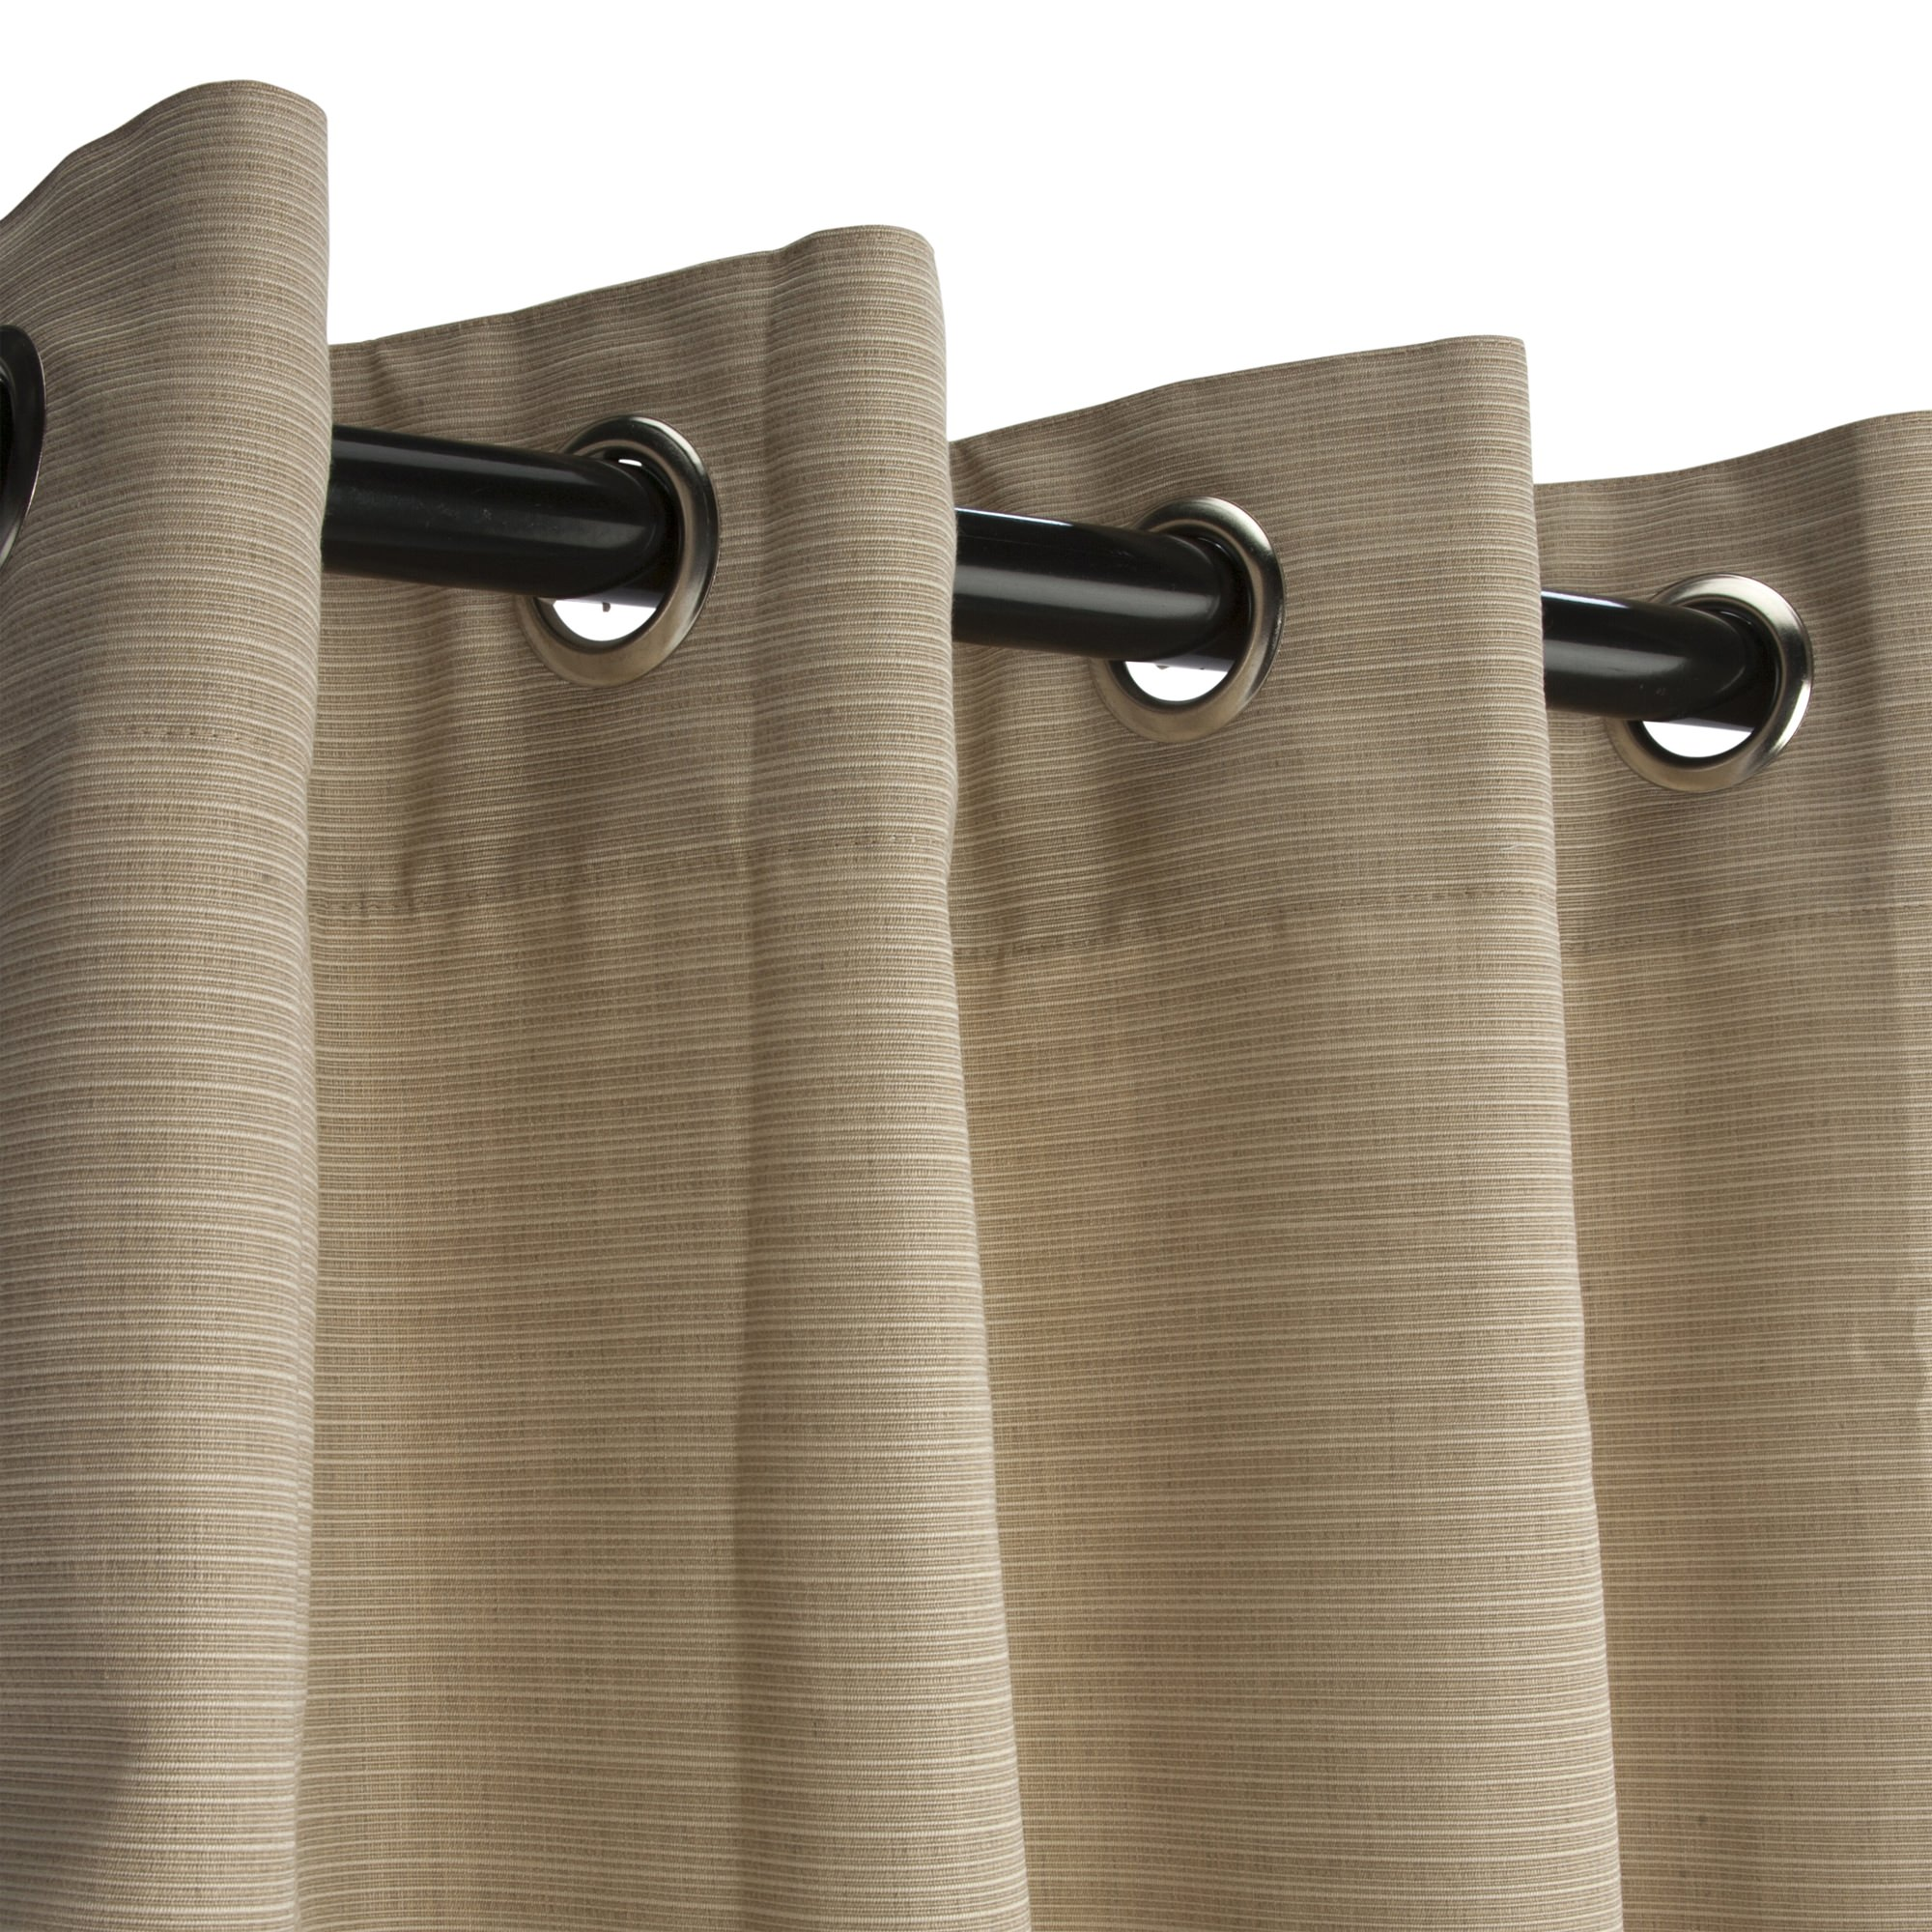 Sunbrella Dupione Sand Outdoor Curtain with Nickel Plated Grommets